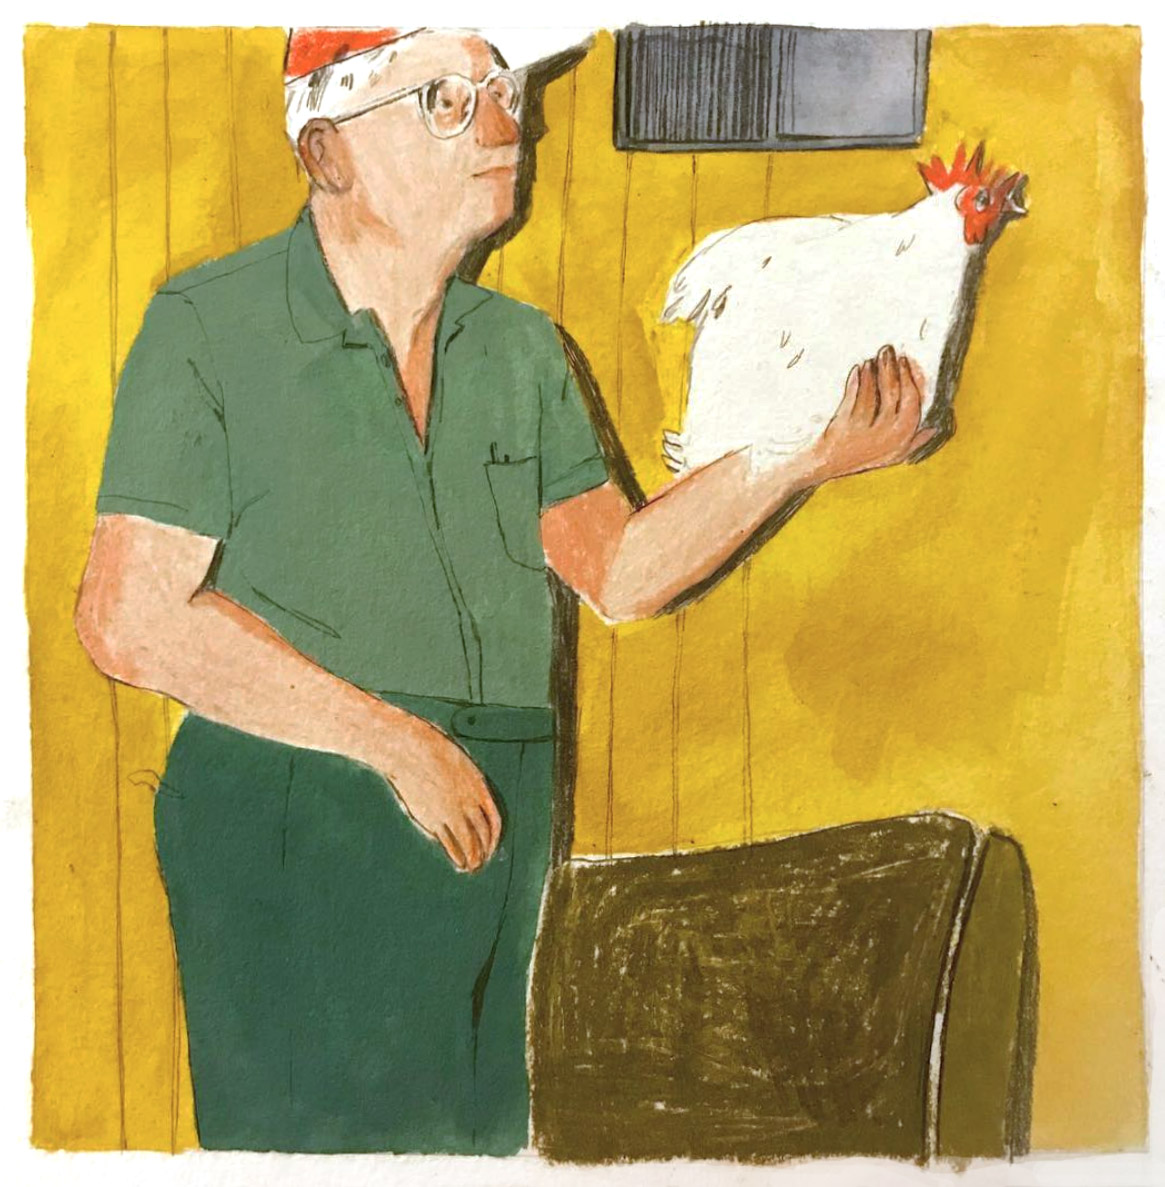 chicken farmer grandpa painting drawing  .jpg